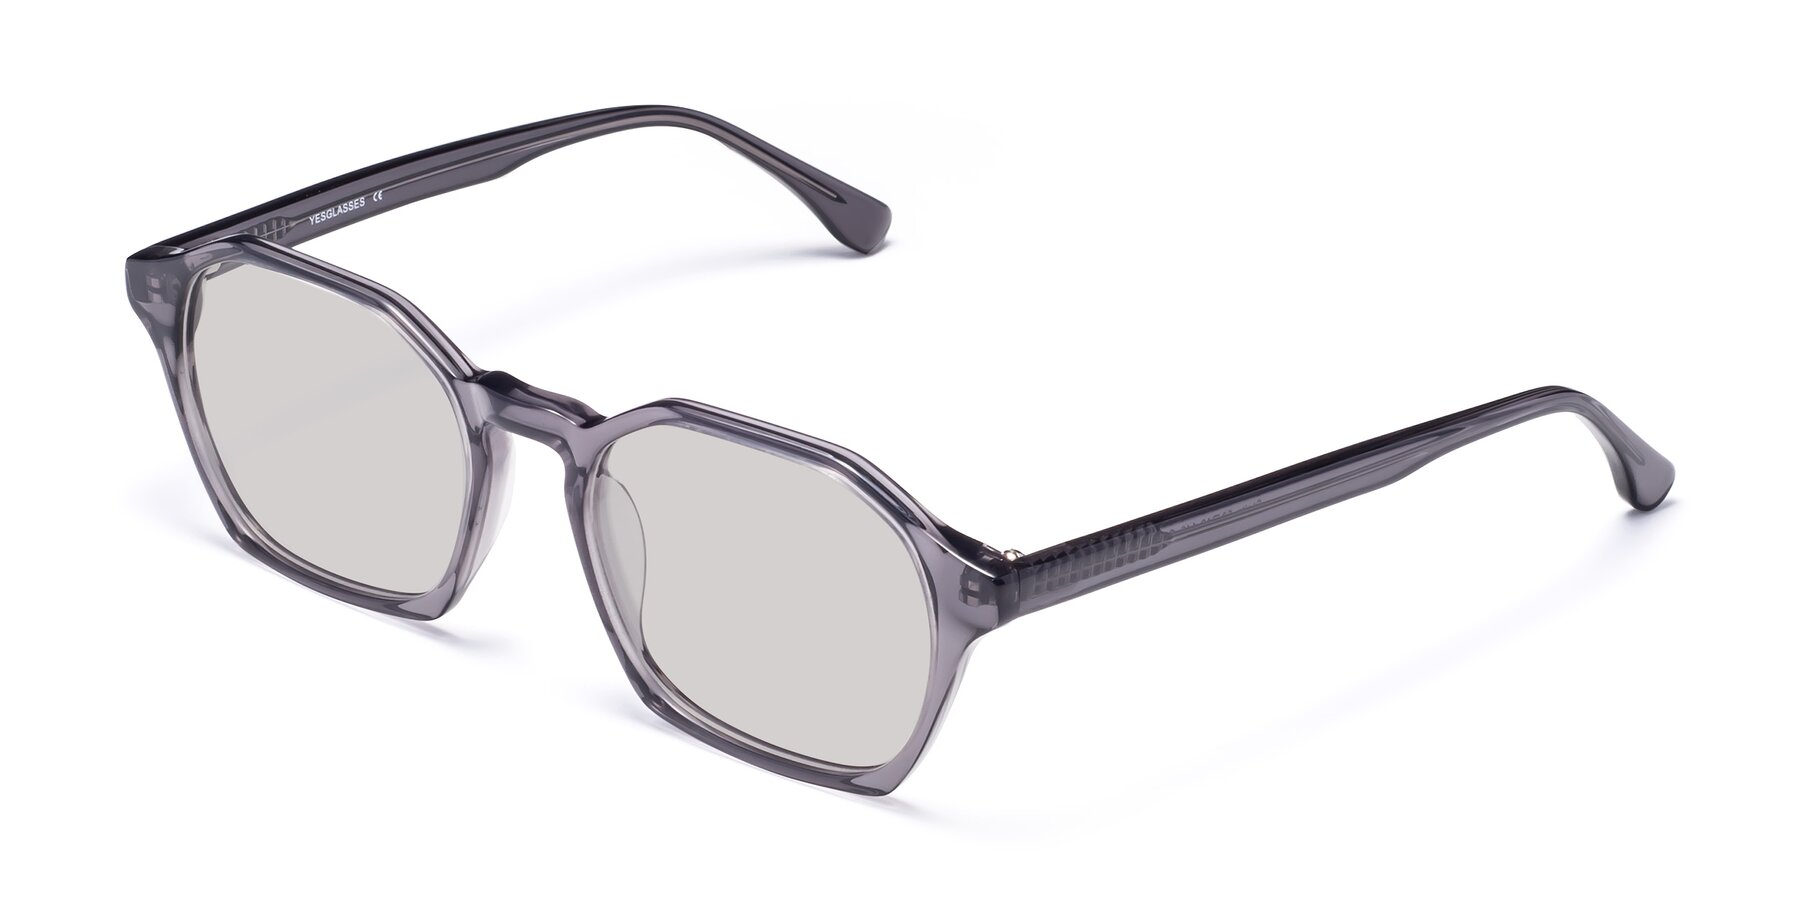 Angle of Stoltz in Translucent Gray with Light Gray Tinted Lenses